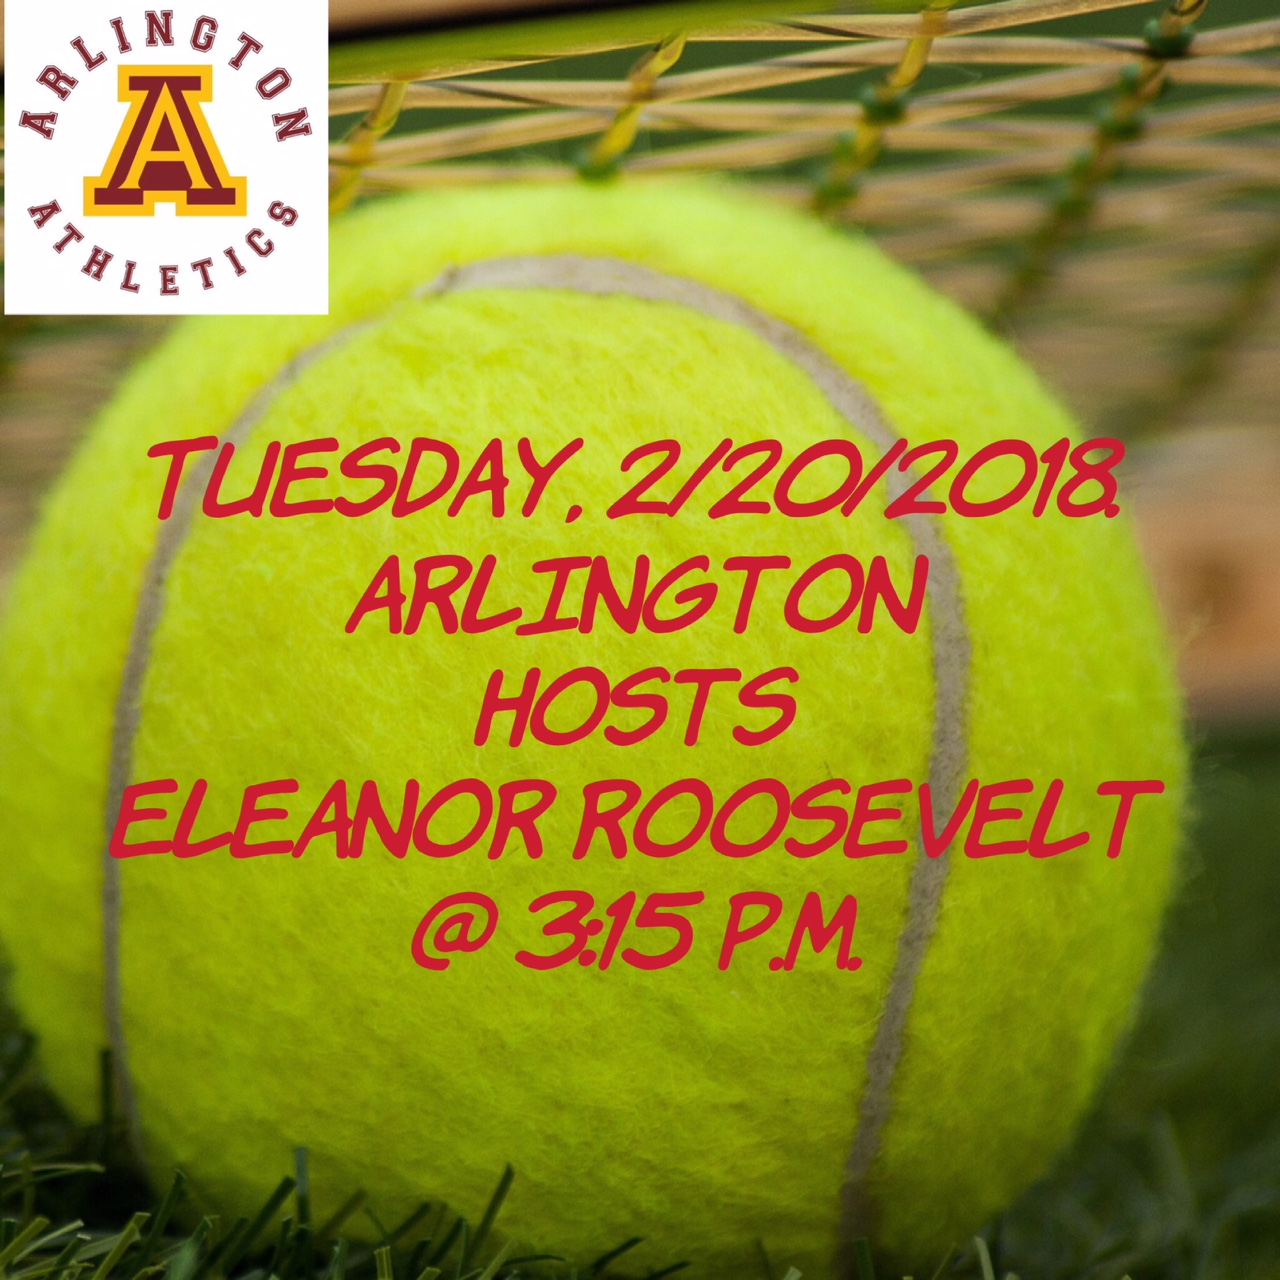 Arlington Boys Tennis hosts Eleanor Roosevelt H.S. on Tuesday, 2/20/2018.